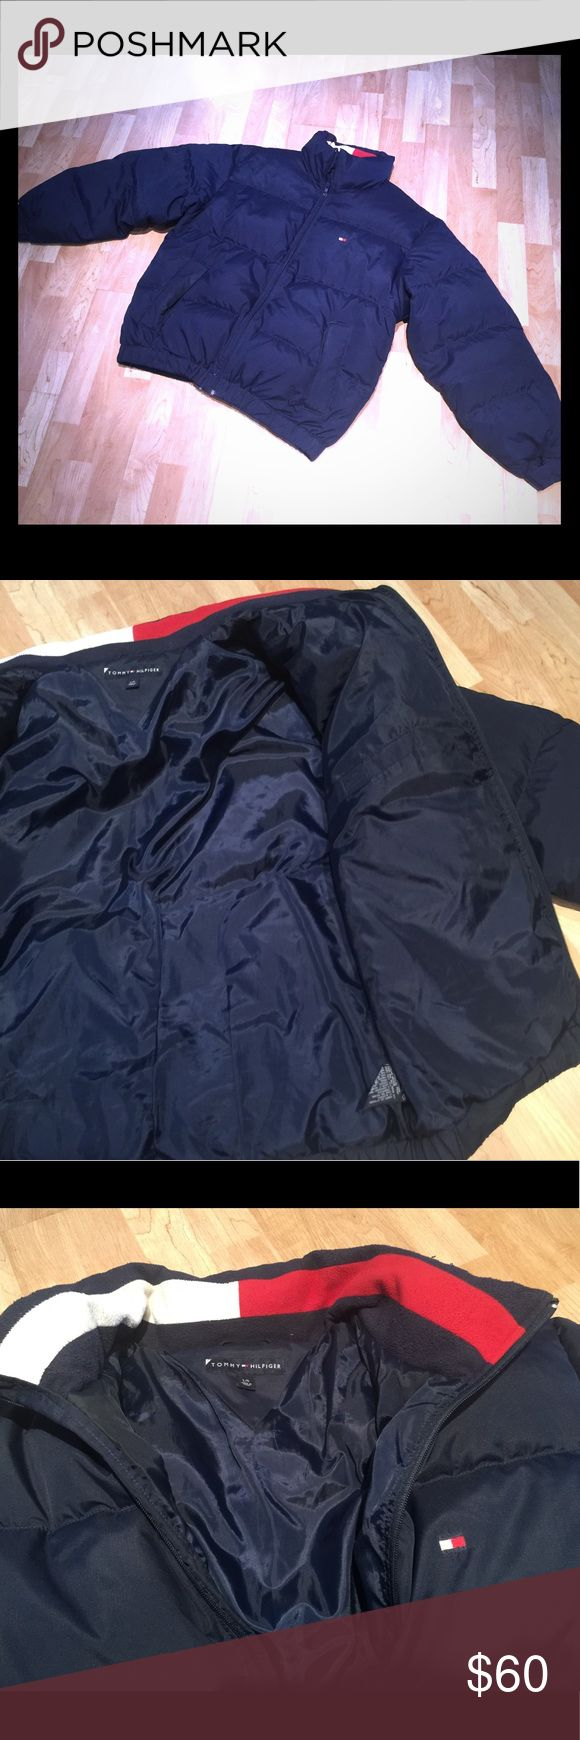 Tommy Hilfiger Men's large down jacket Tommy Hilfiger men's large down jacket. In excellent condition. Fromfrom a smoke, free animal home. Bundle and save. Tommy Hilfiger Jackets & Coats Puffers